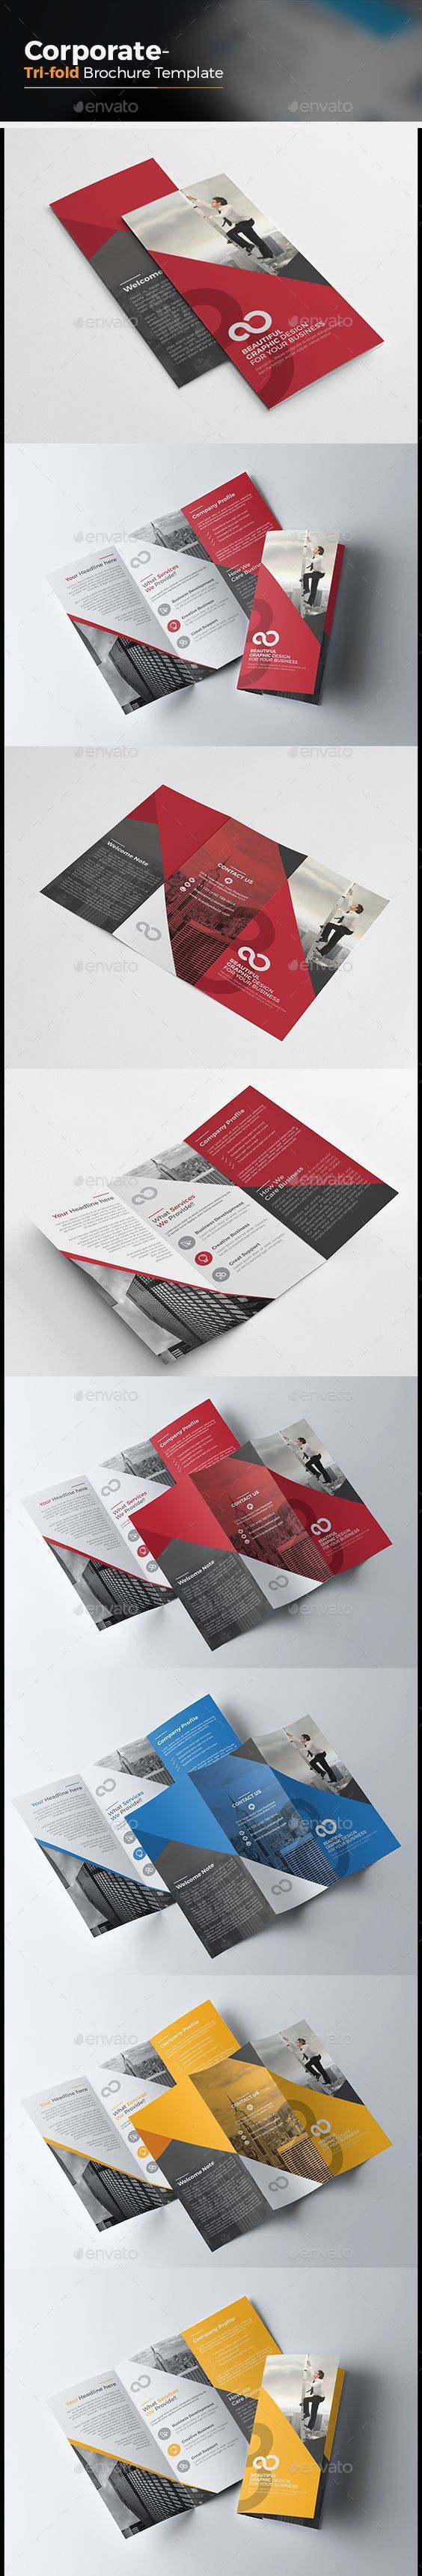 Corporate Tri fold Multipurpose Brochure Template Vector EPS, AI #design Download: http://graphicriver.net/item/corporate-tri-fold-multipurpose-brochure/13991747?ref=ksioks: